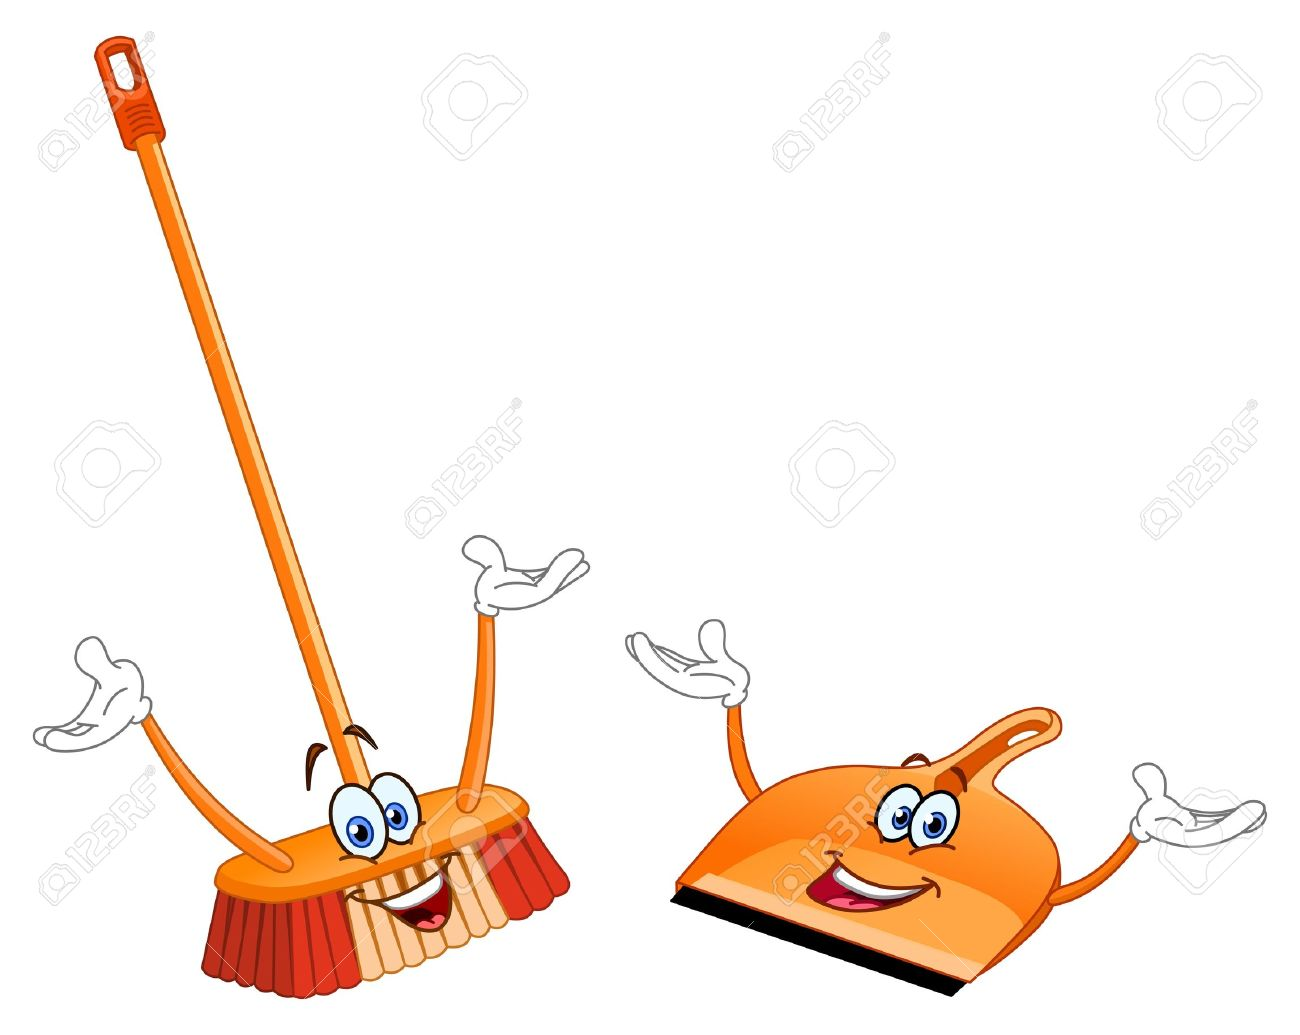 Broom and dustpan cartoon.